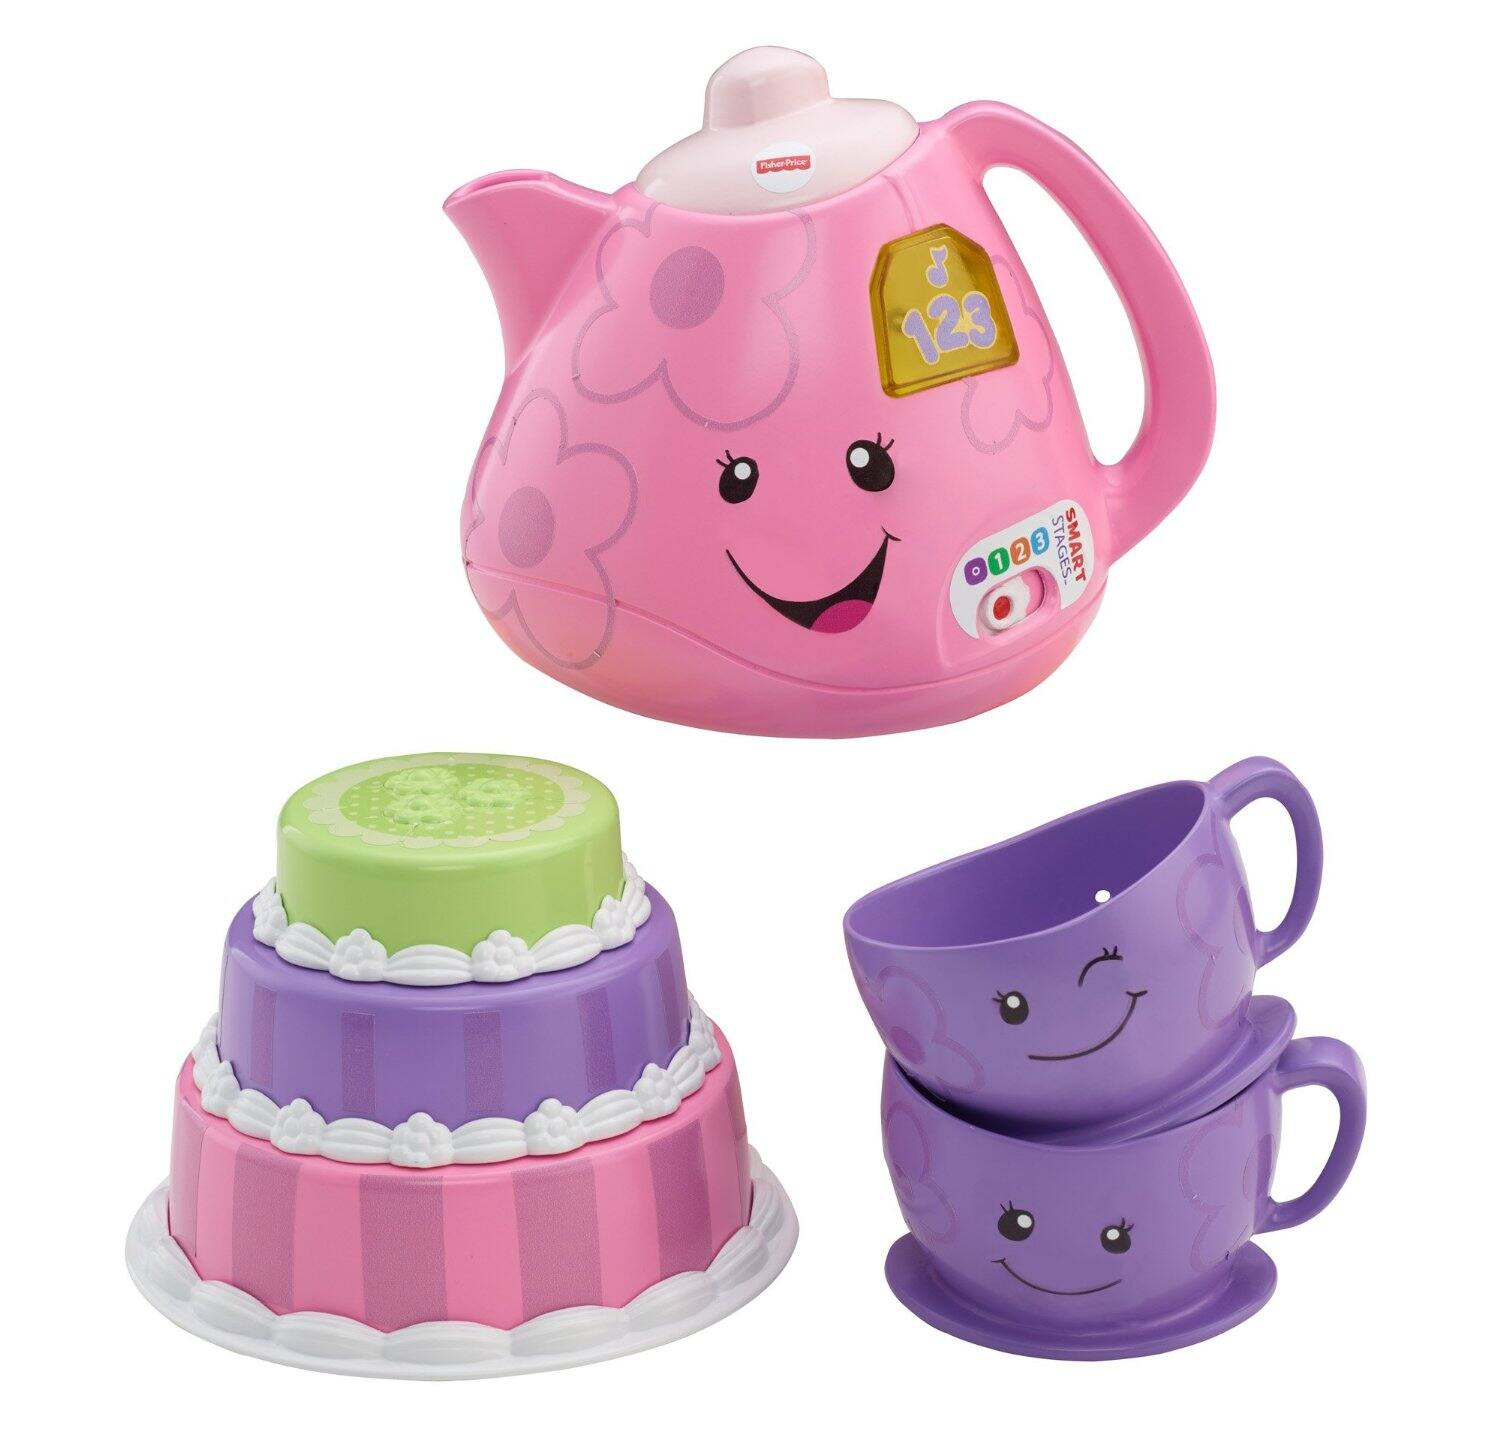 Fisher-Price Laugh & Learn Smart Stages Tea Set $11.80